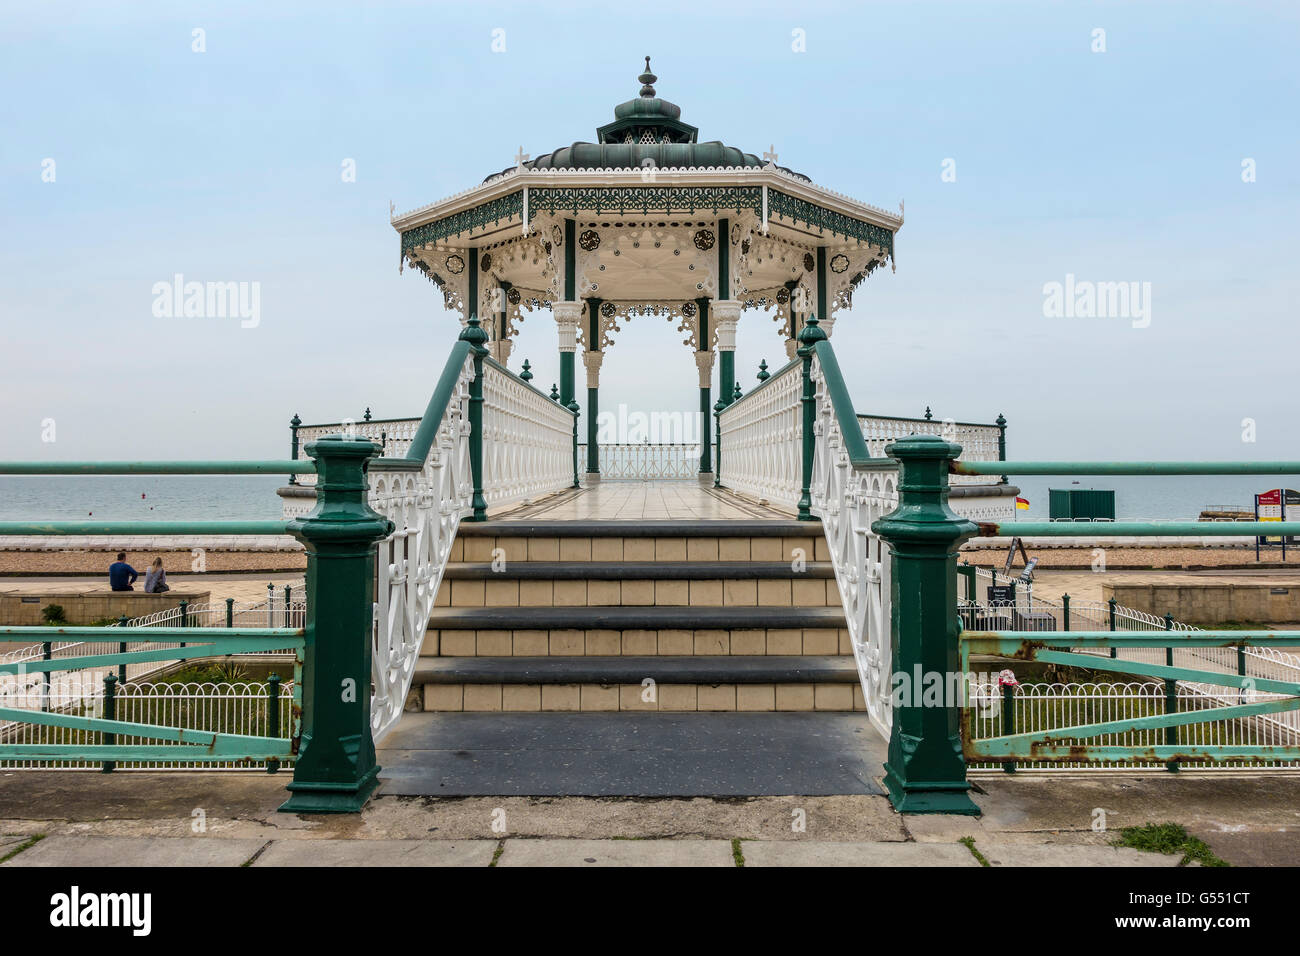 The Bandstand Brighton Seafront Brighton Sussex England - Stock Image